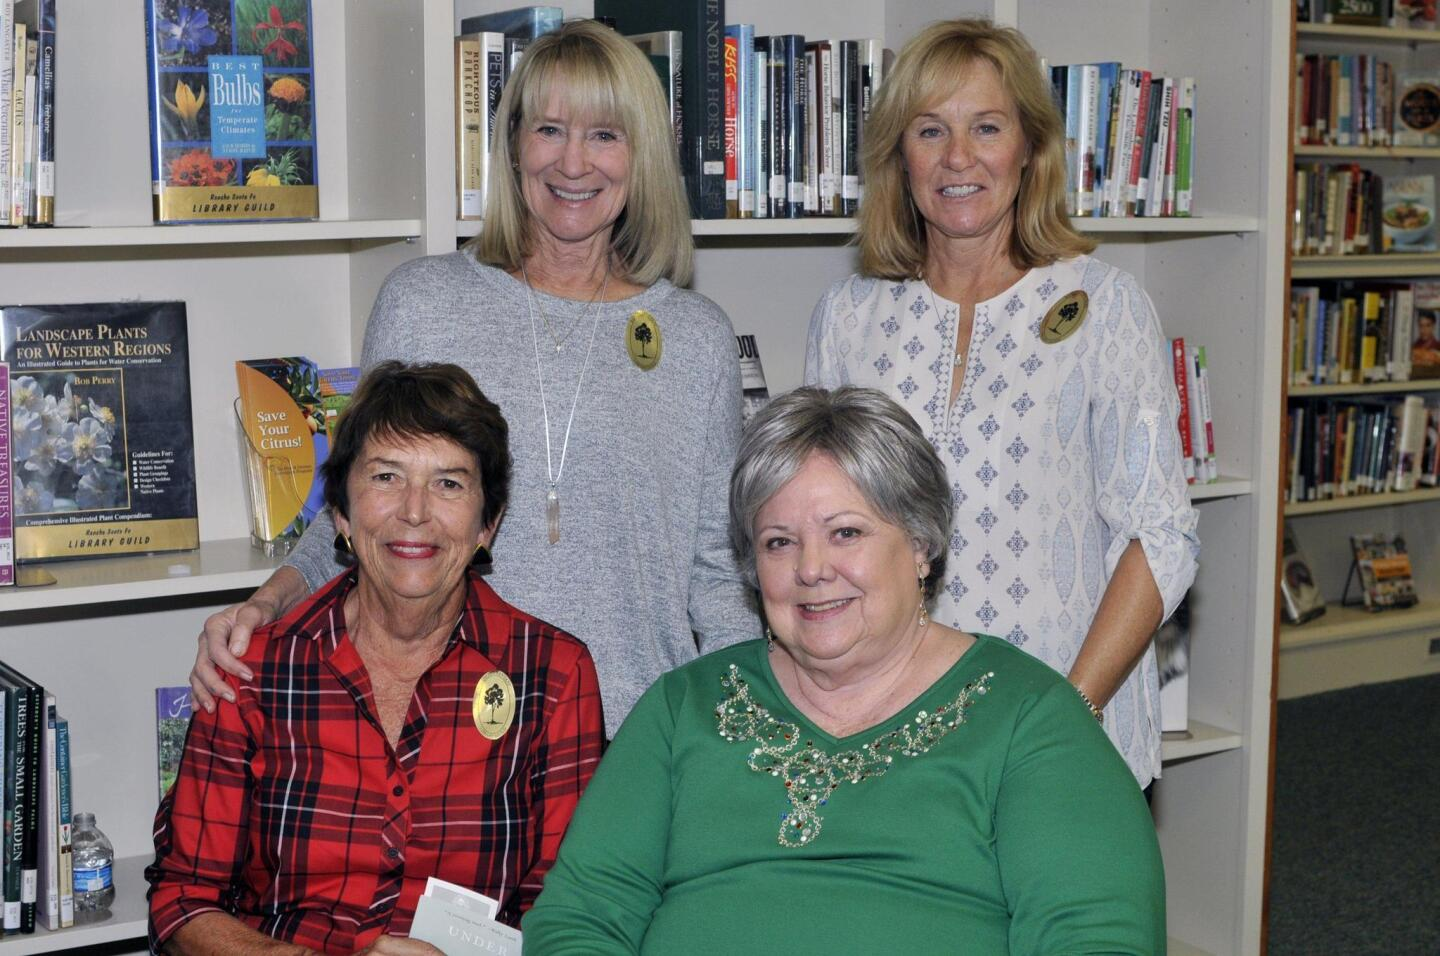 Candace Humber, Kathleen Corneil. Seated: Judy Arendsee, Dianne Sullivan